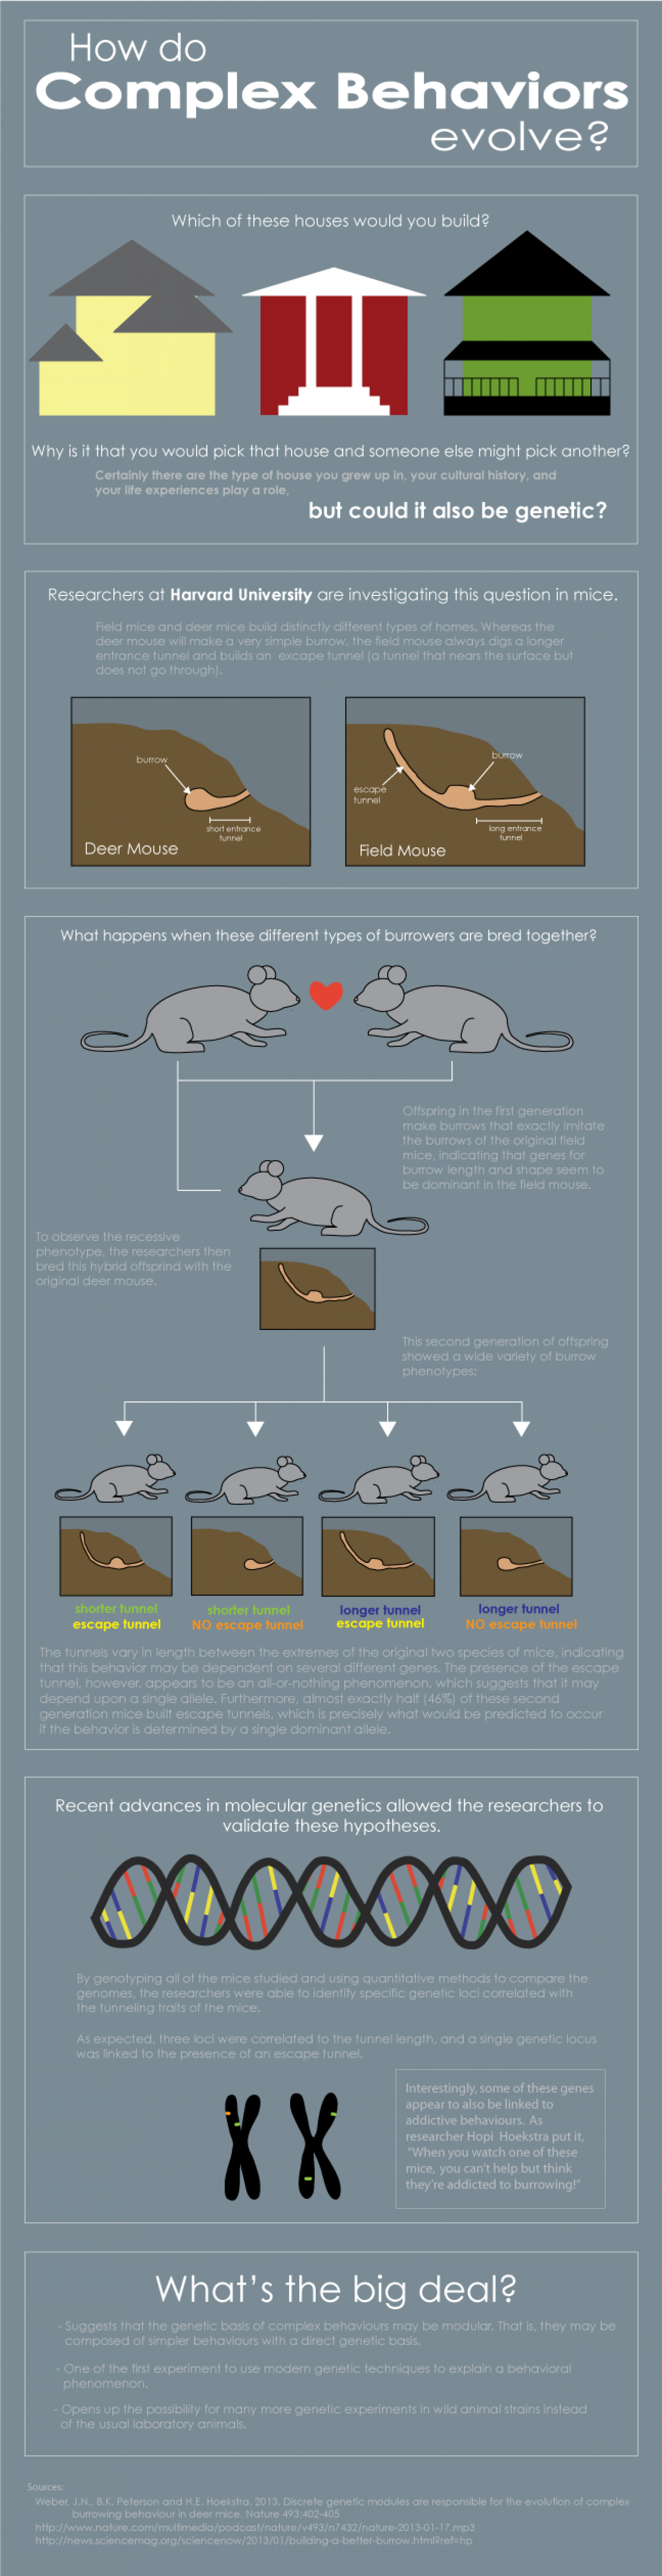 How do complex behaviors evolve? Infographic